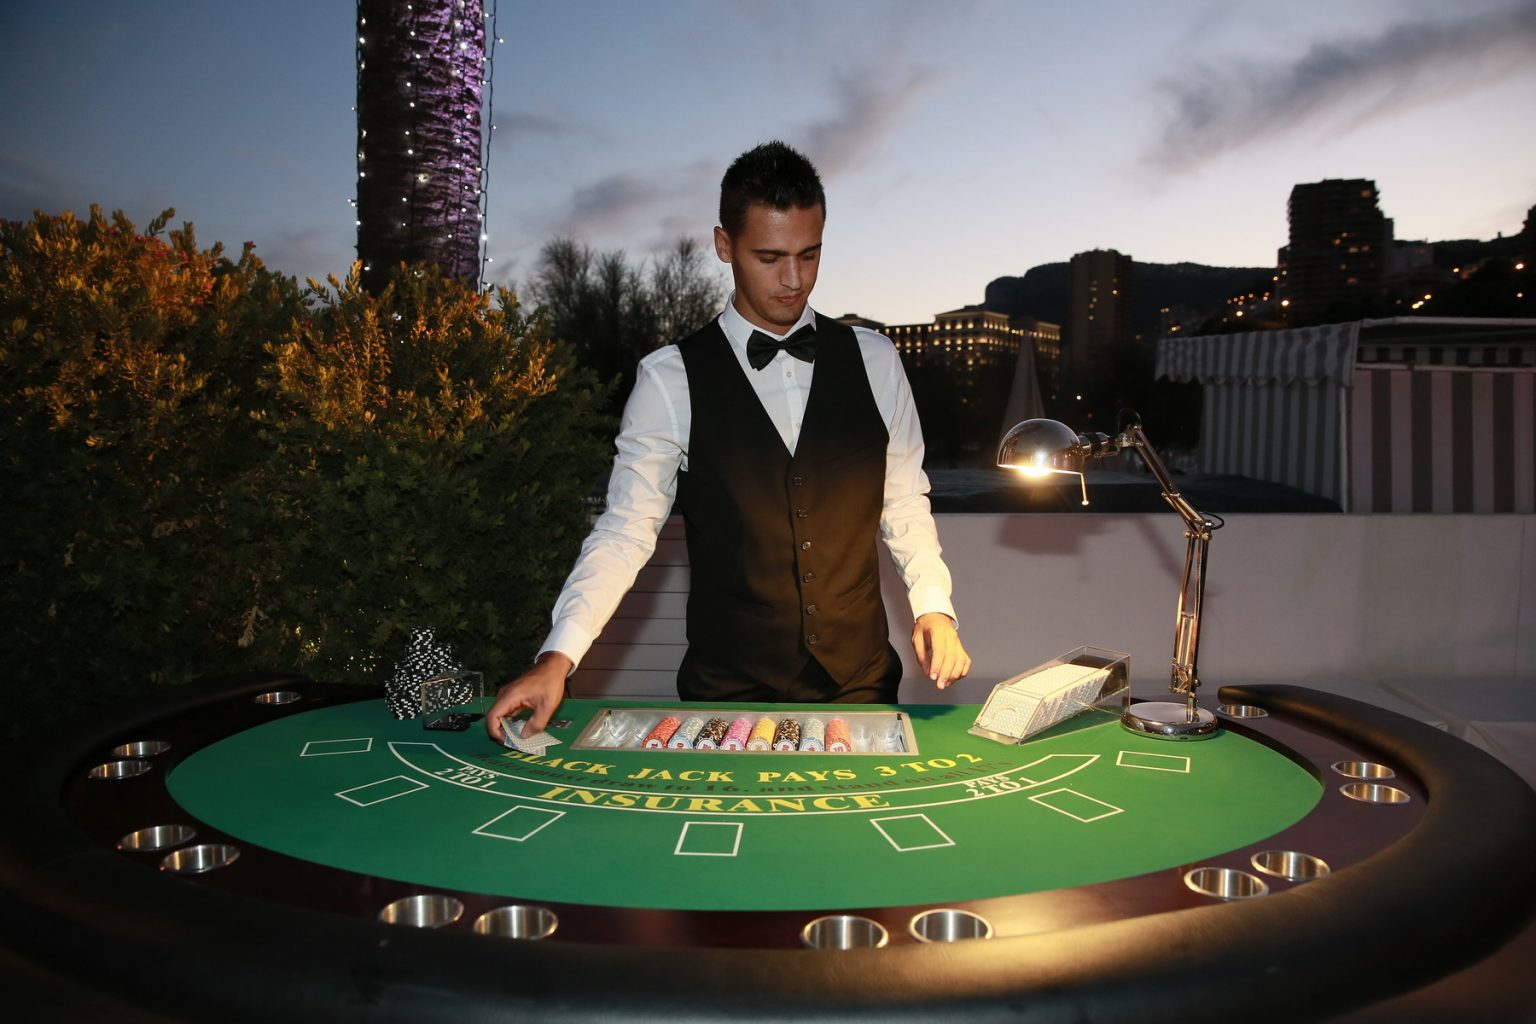 Le Deck Monte Carlo Pool Evening 16 - Le Deck Monte Carlo Pool Evening